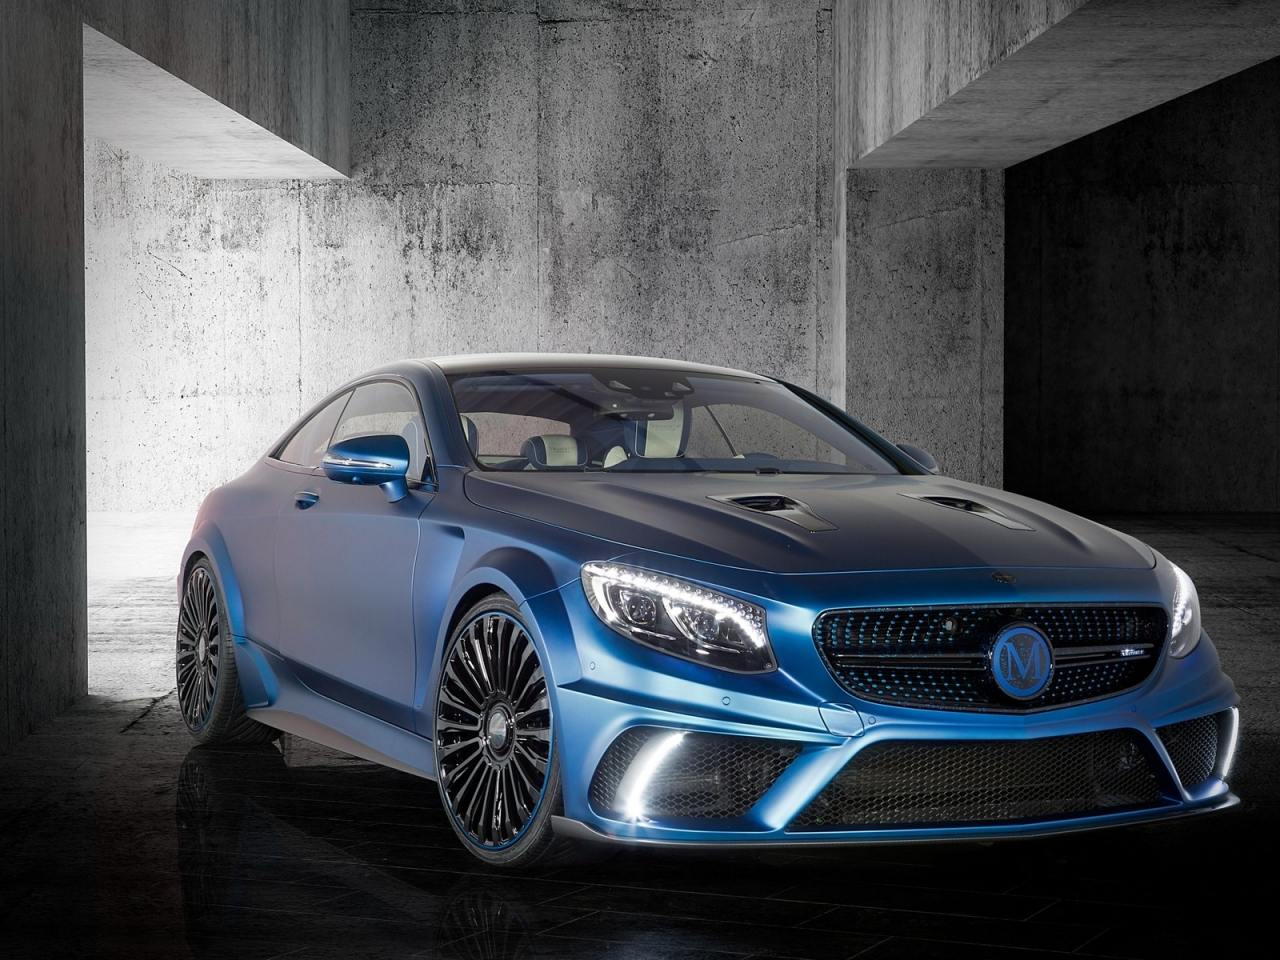 Mercedes Benz S63 AMG Brabus Diamond Edition for 1280 x 960 resolution